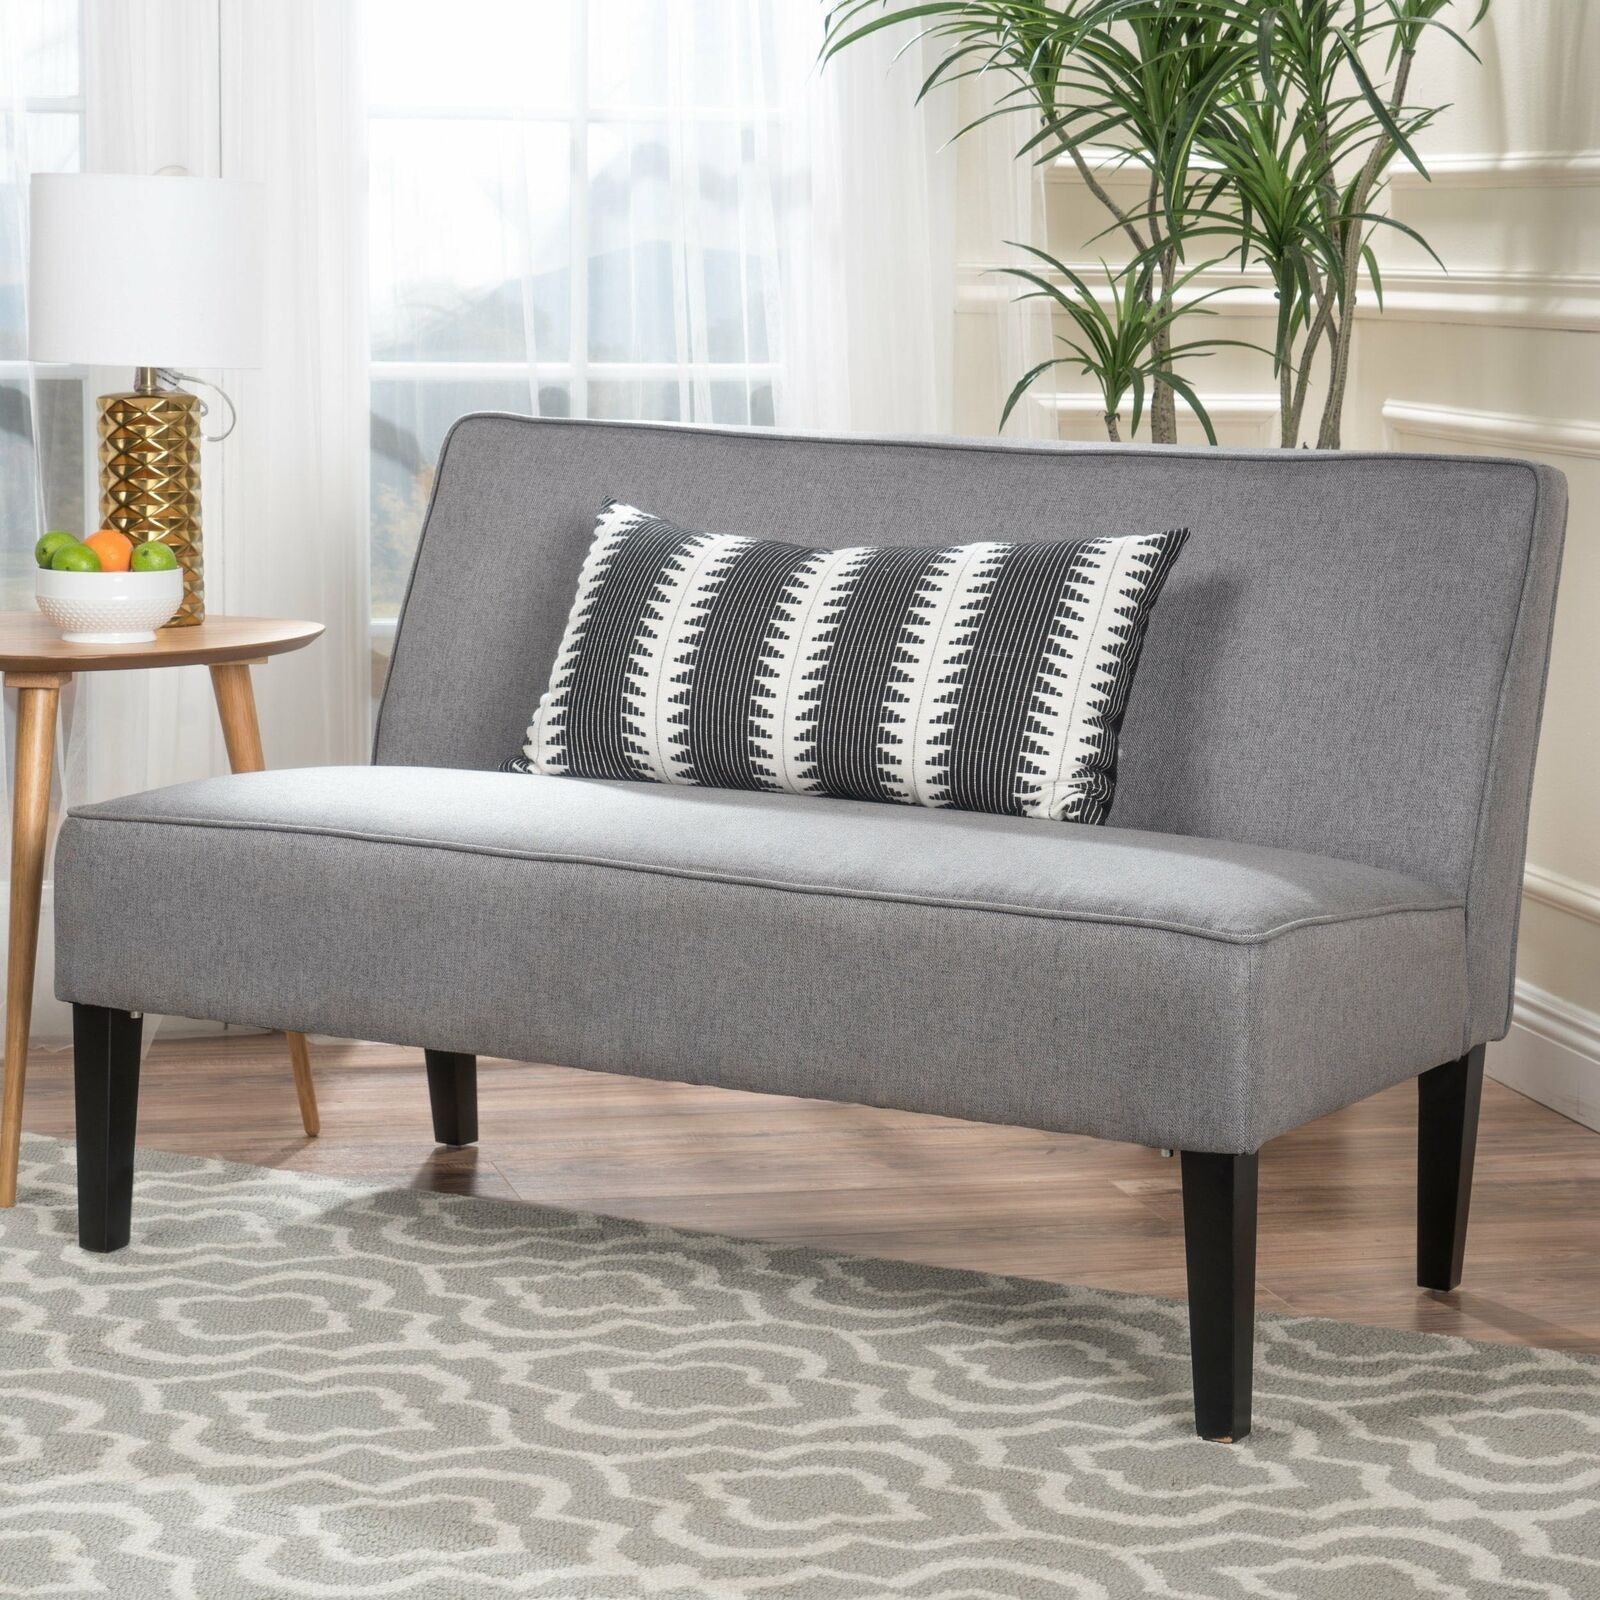 Loveseat Sofa Lounge Small Living Room Couch Fabric Love Seat Soft Modern Grey